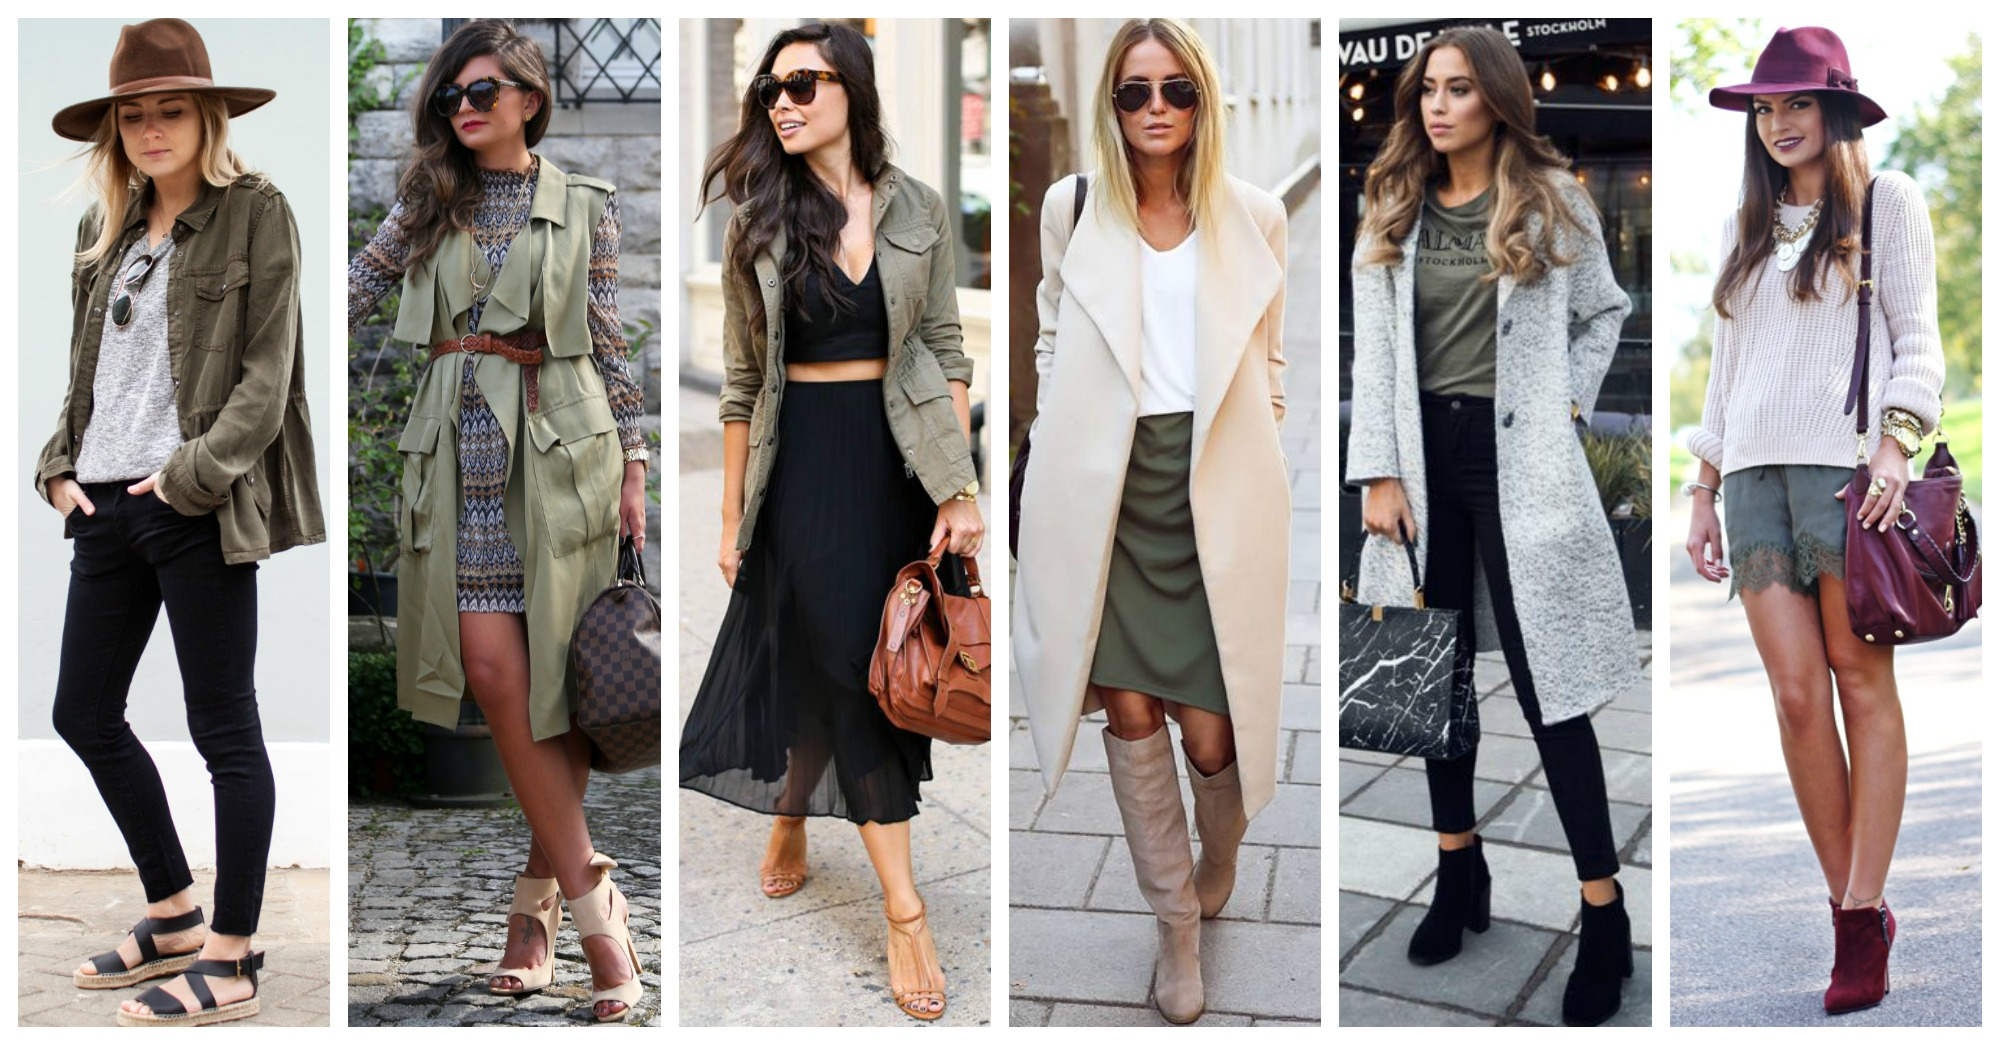 21 Stylish Ways to Wear Khaki